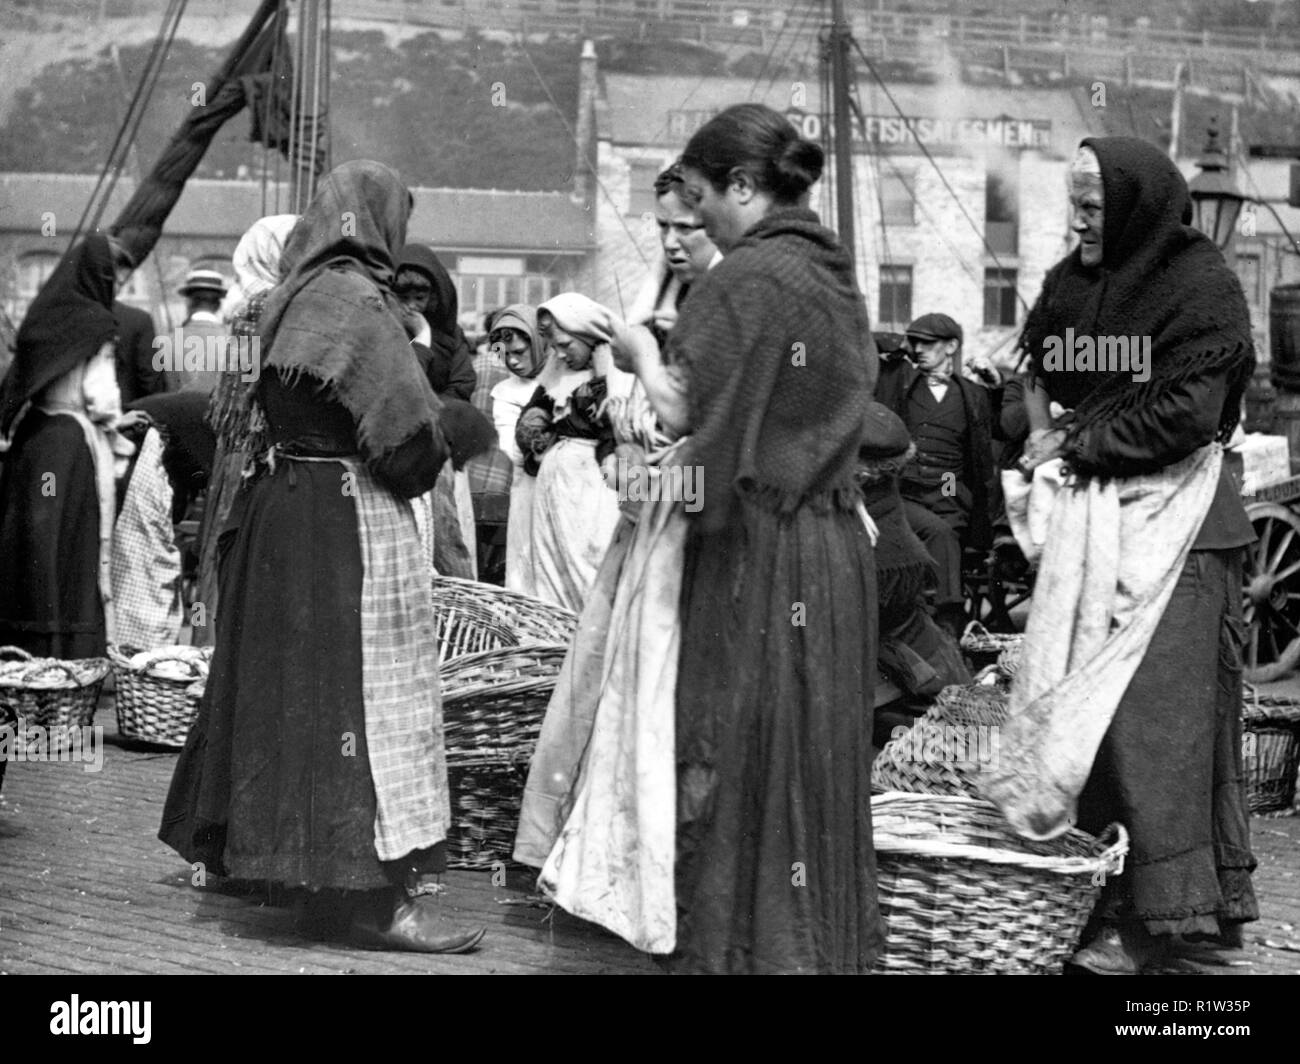 Fishwives, North Shields early 1900's - Stock Image